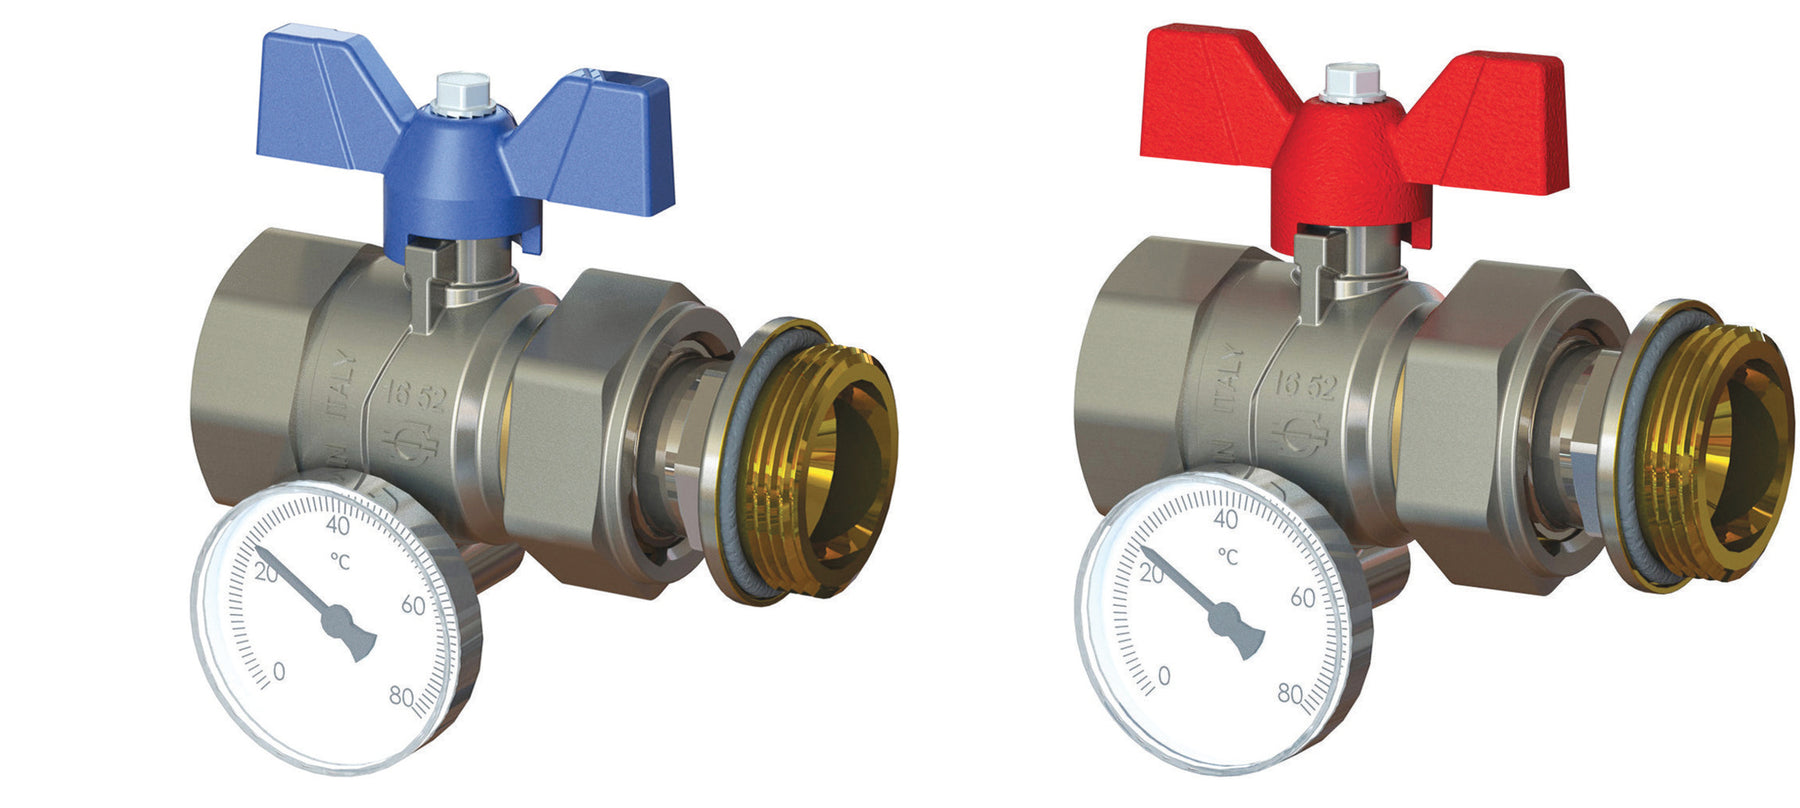 Pair Straight Progress Ball Valves with Offset Temperature Gauge